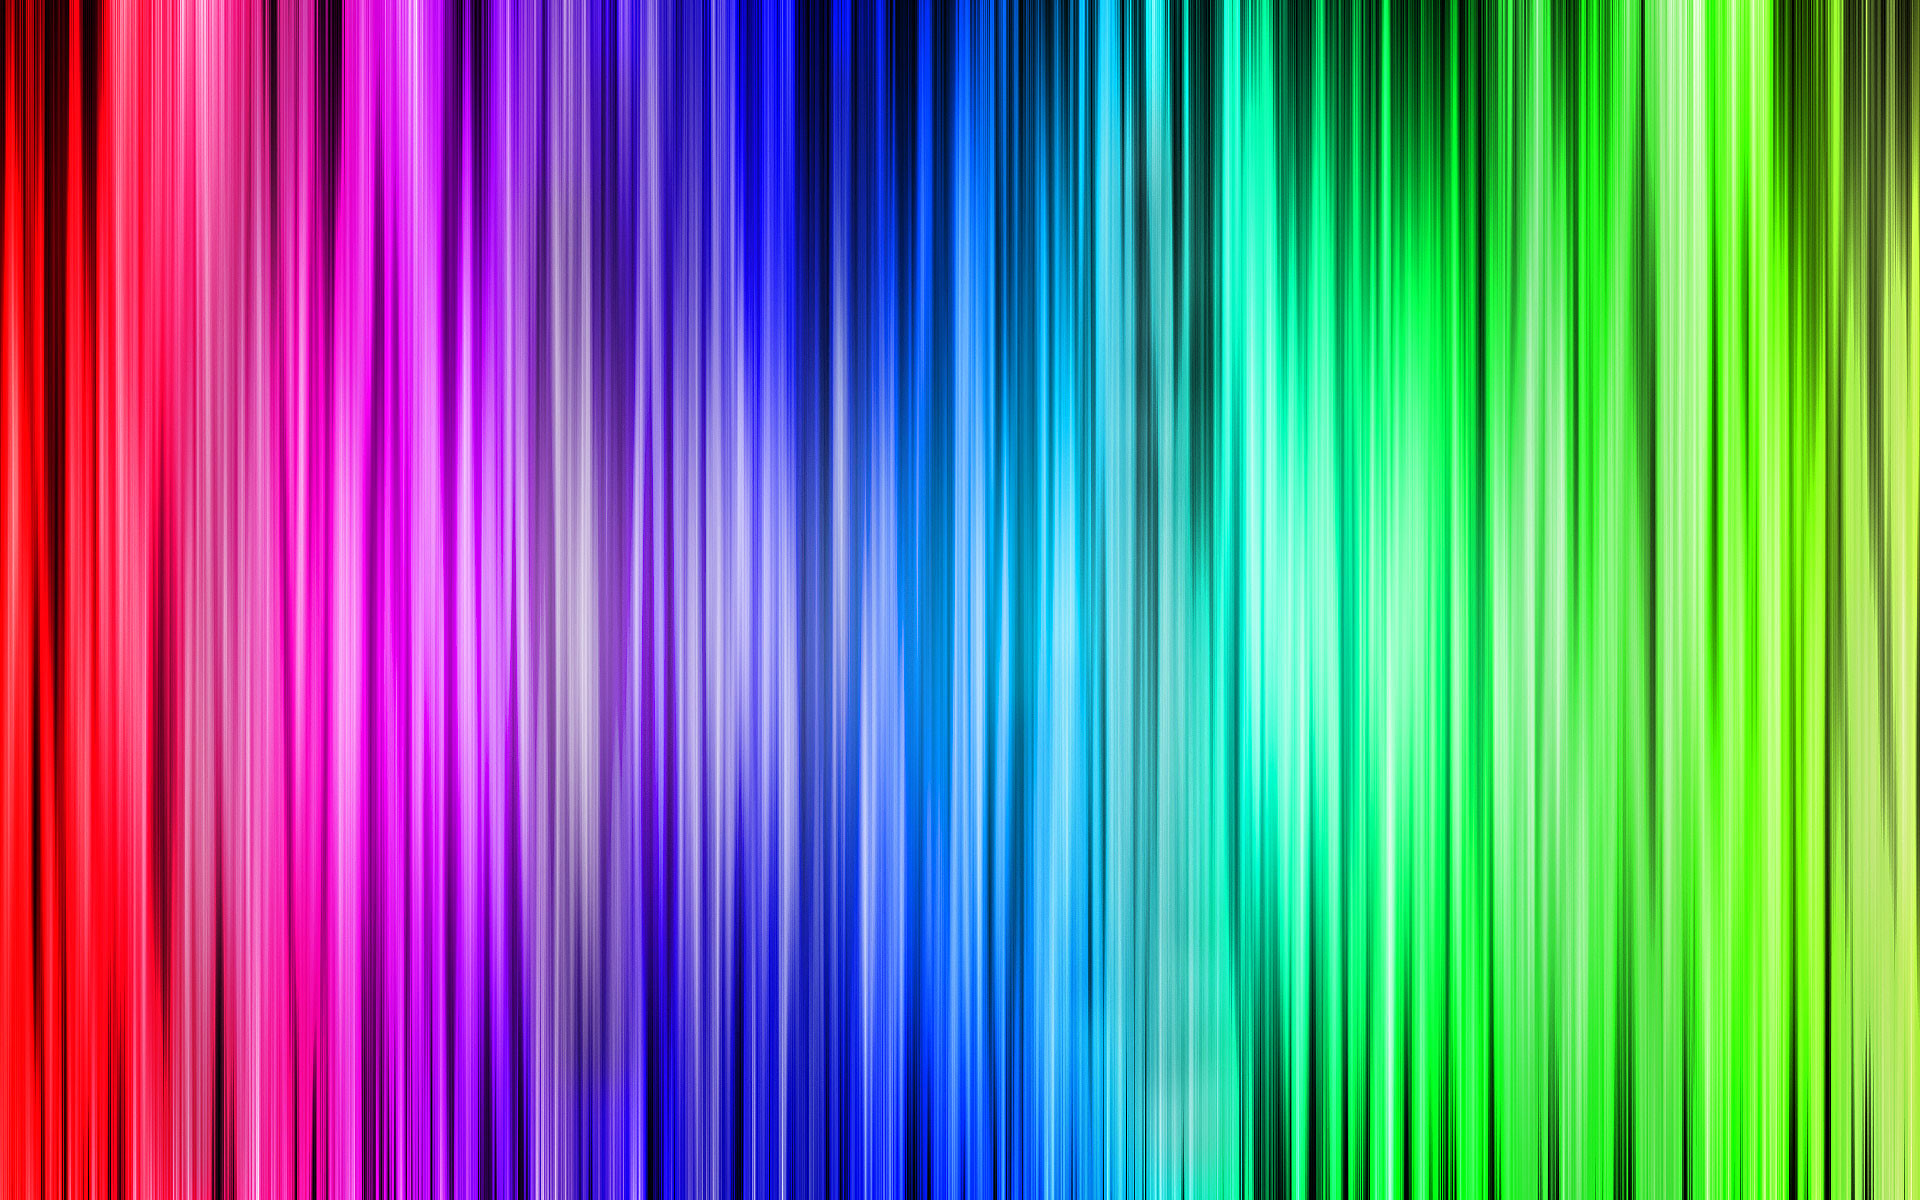 Fun Colorful Backgrounds (45+ images)